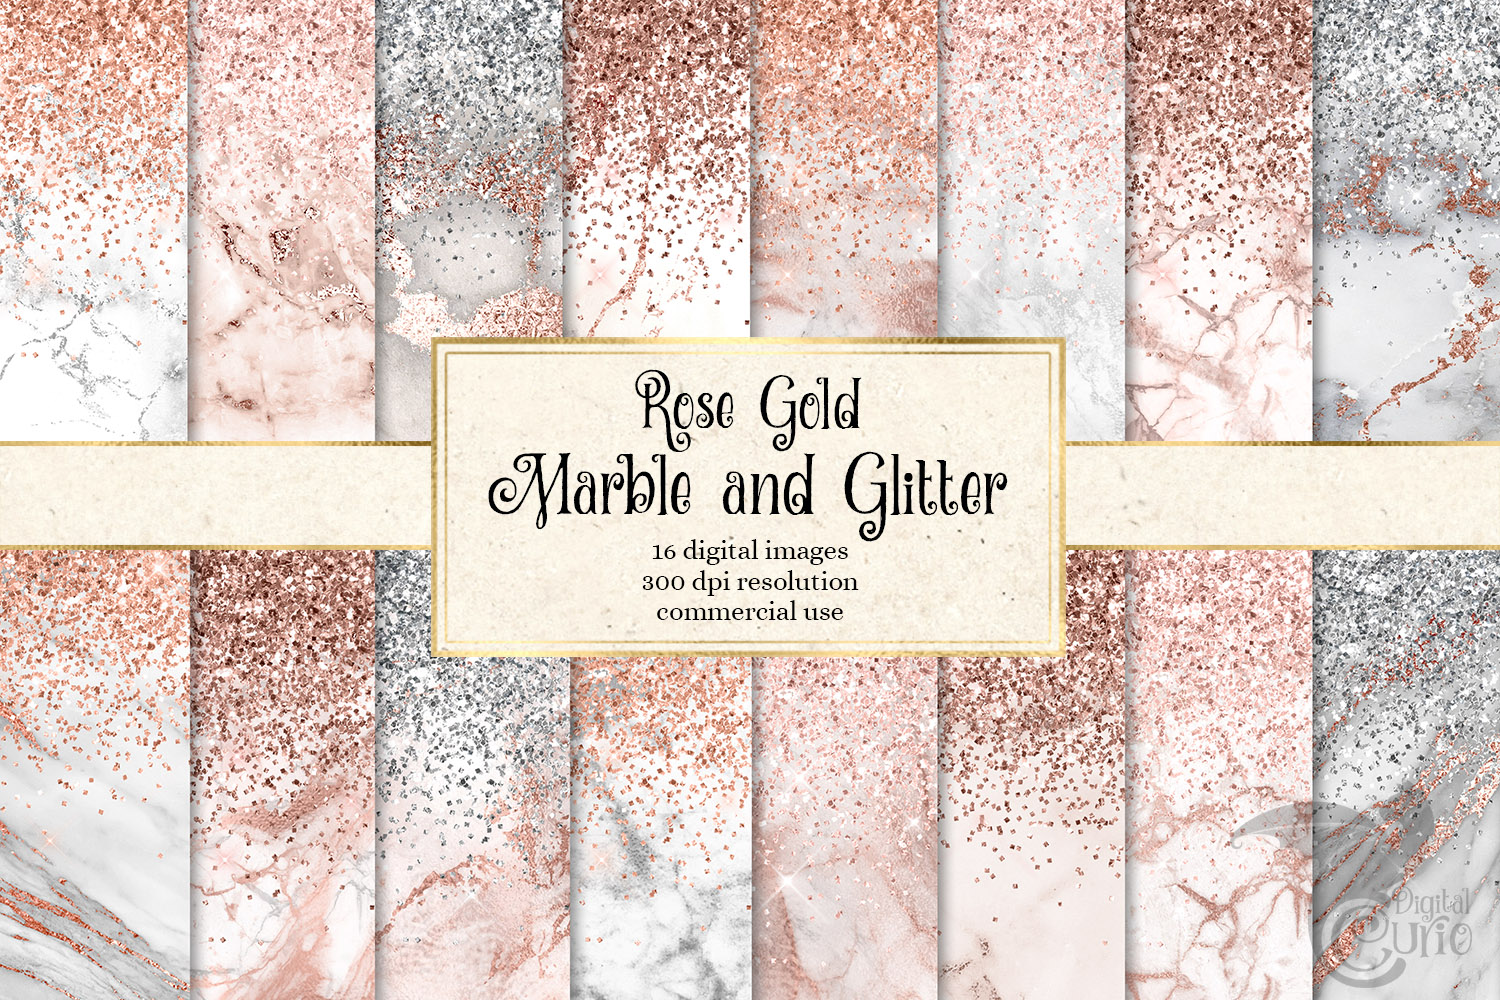 Rose Gold Marble and Glitter Textures Graphics 3642766 1